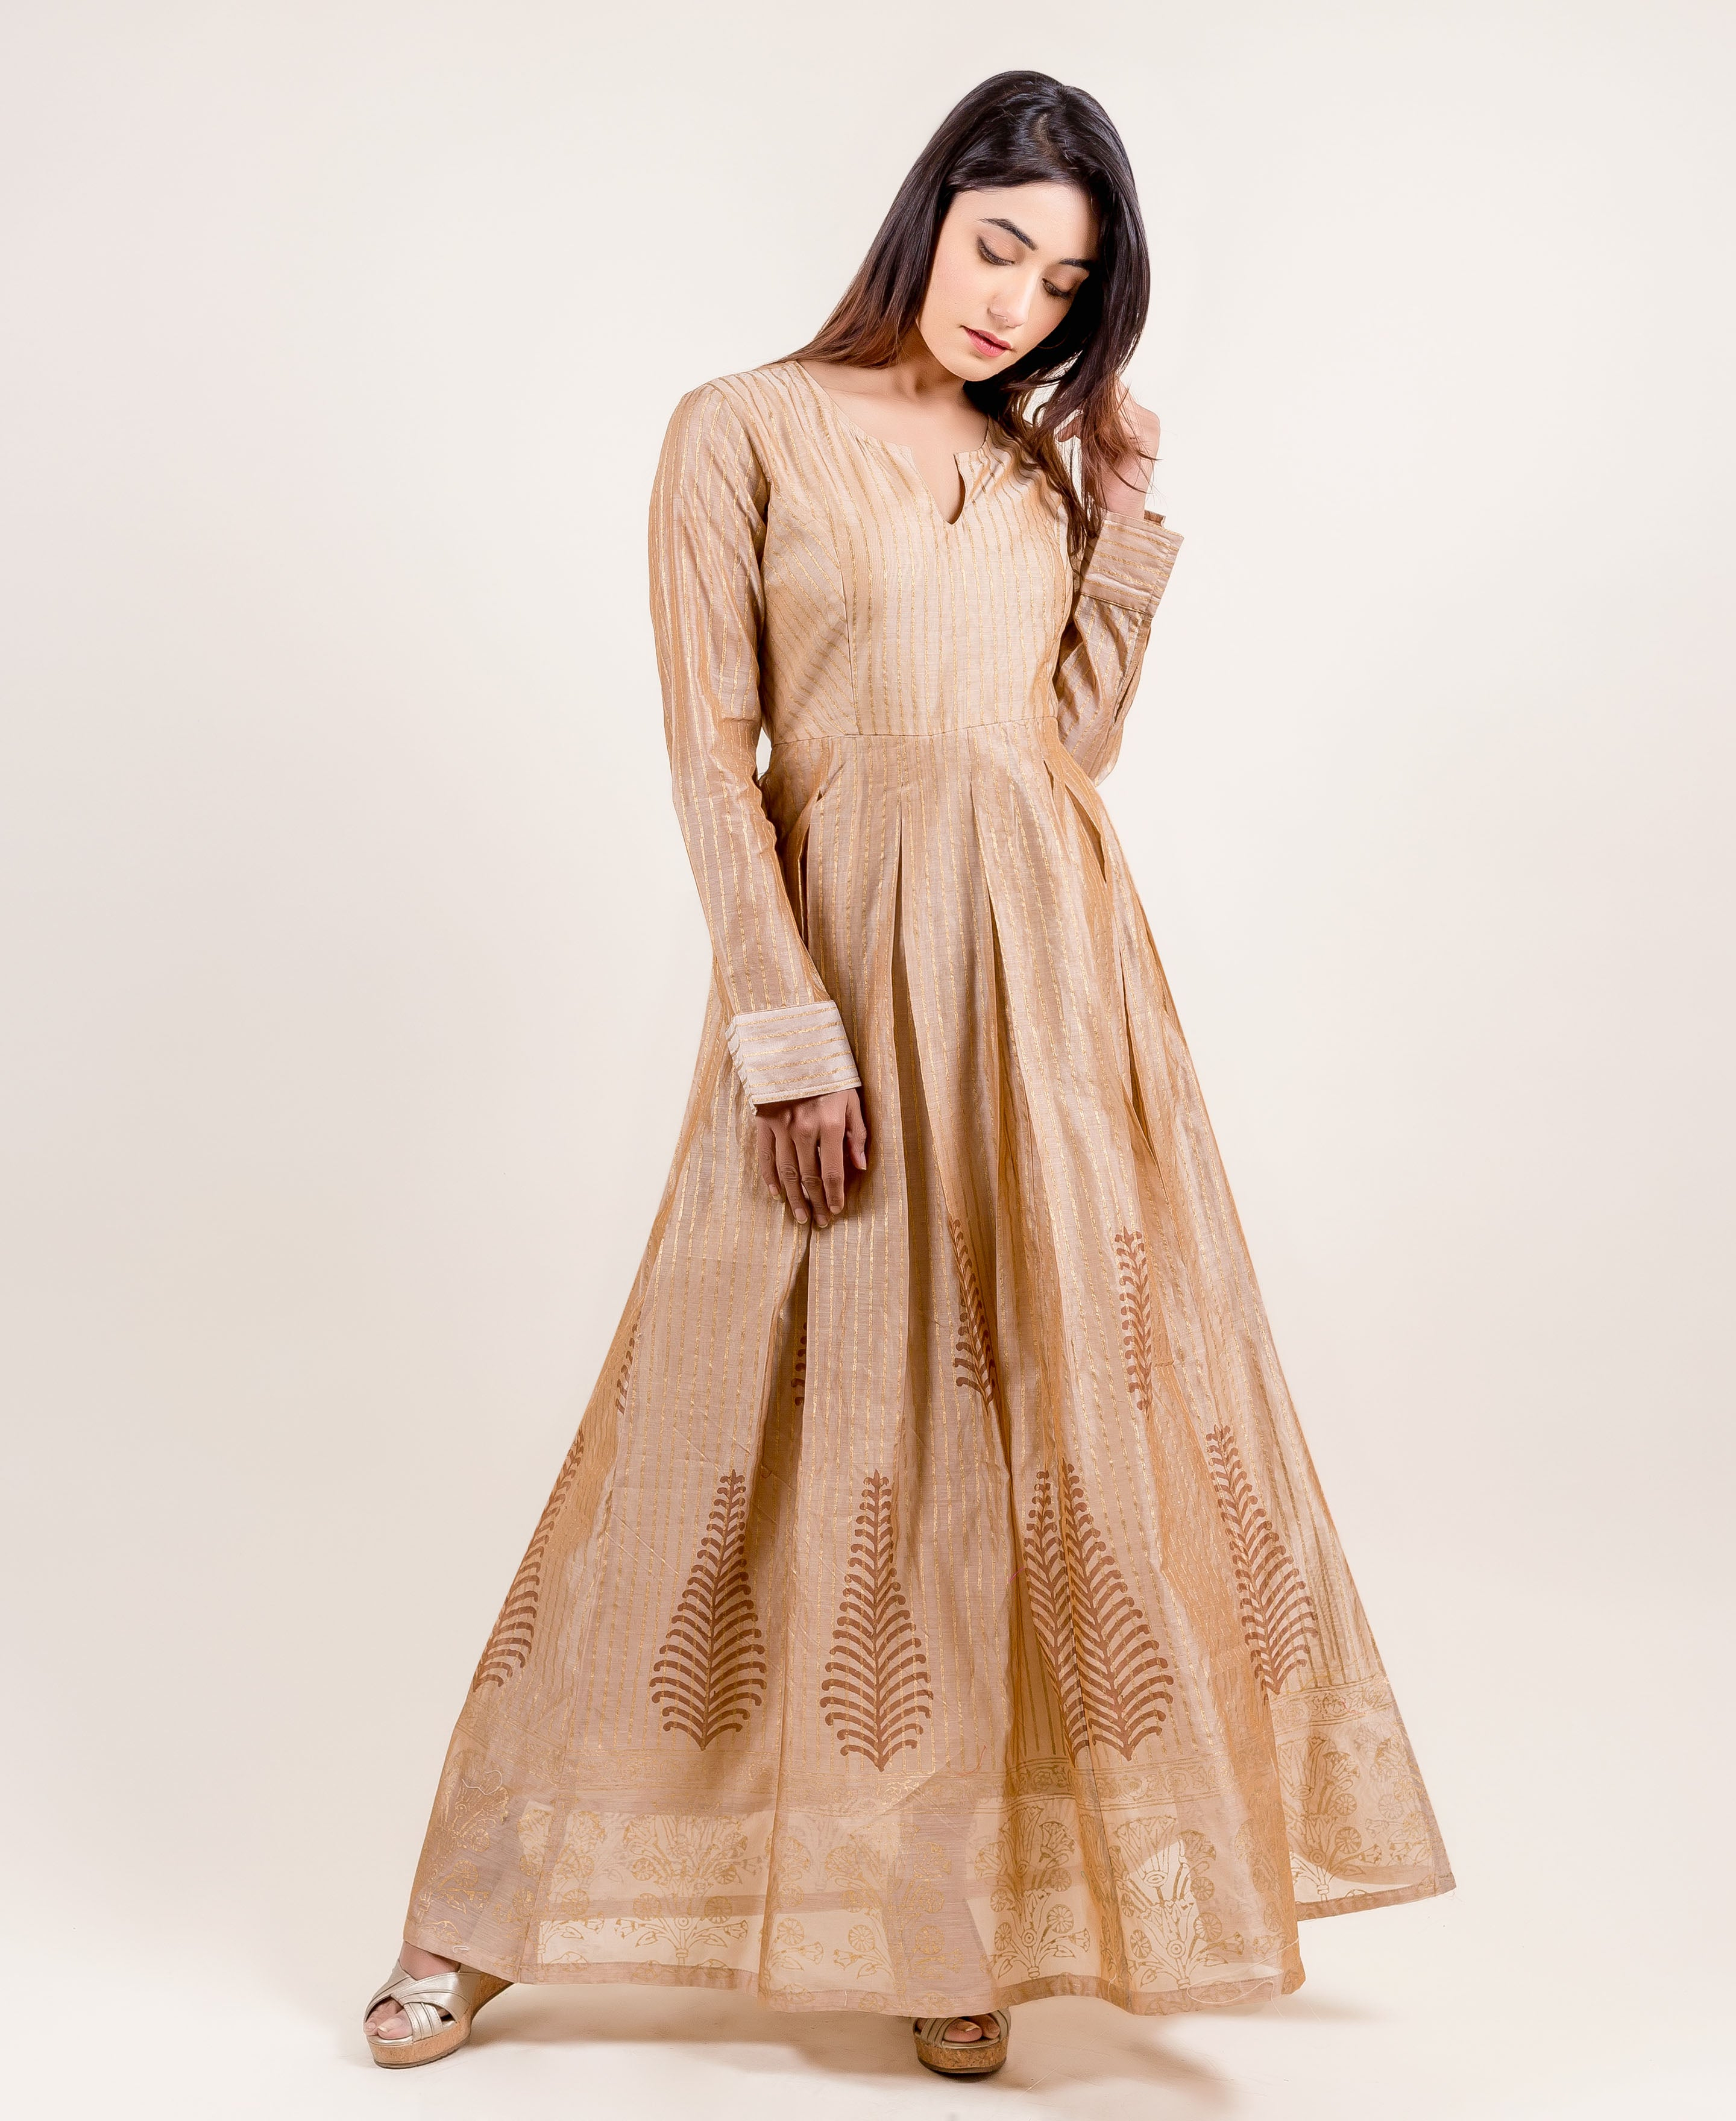 Breathtakingly Stunning Gold Printed Full Sleeved Long Dress